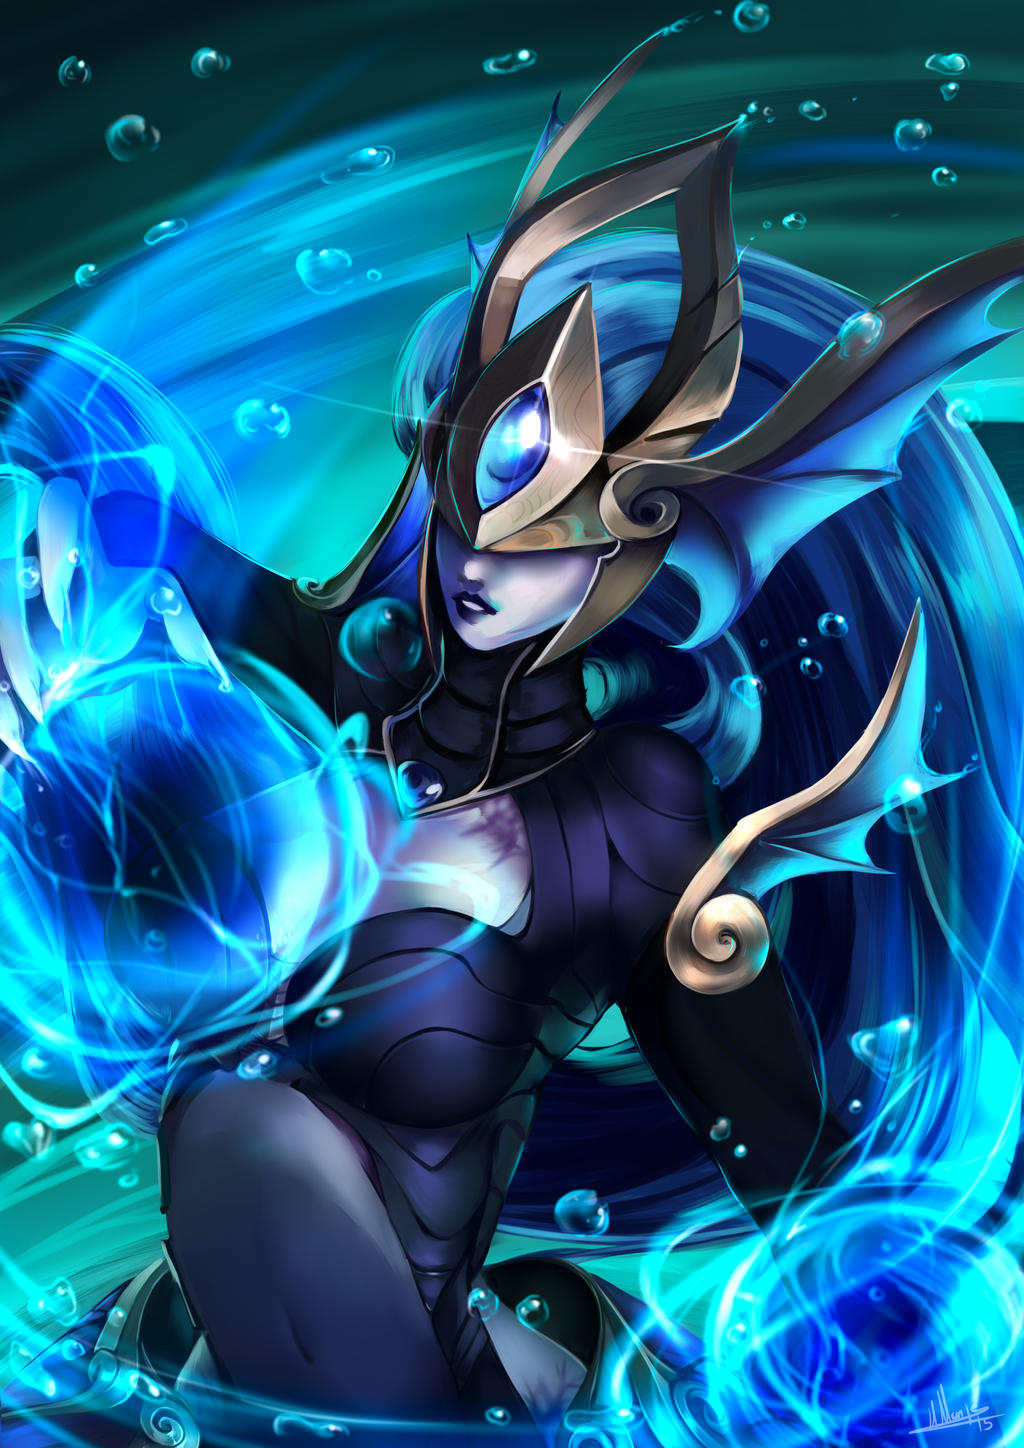 atlantean syndra comission by yami11 on DeviantArt